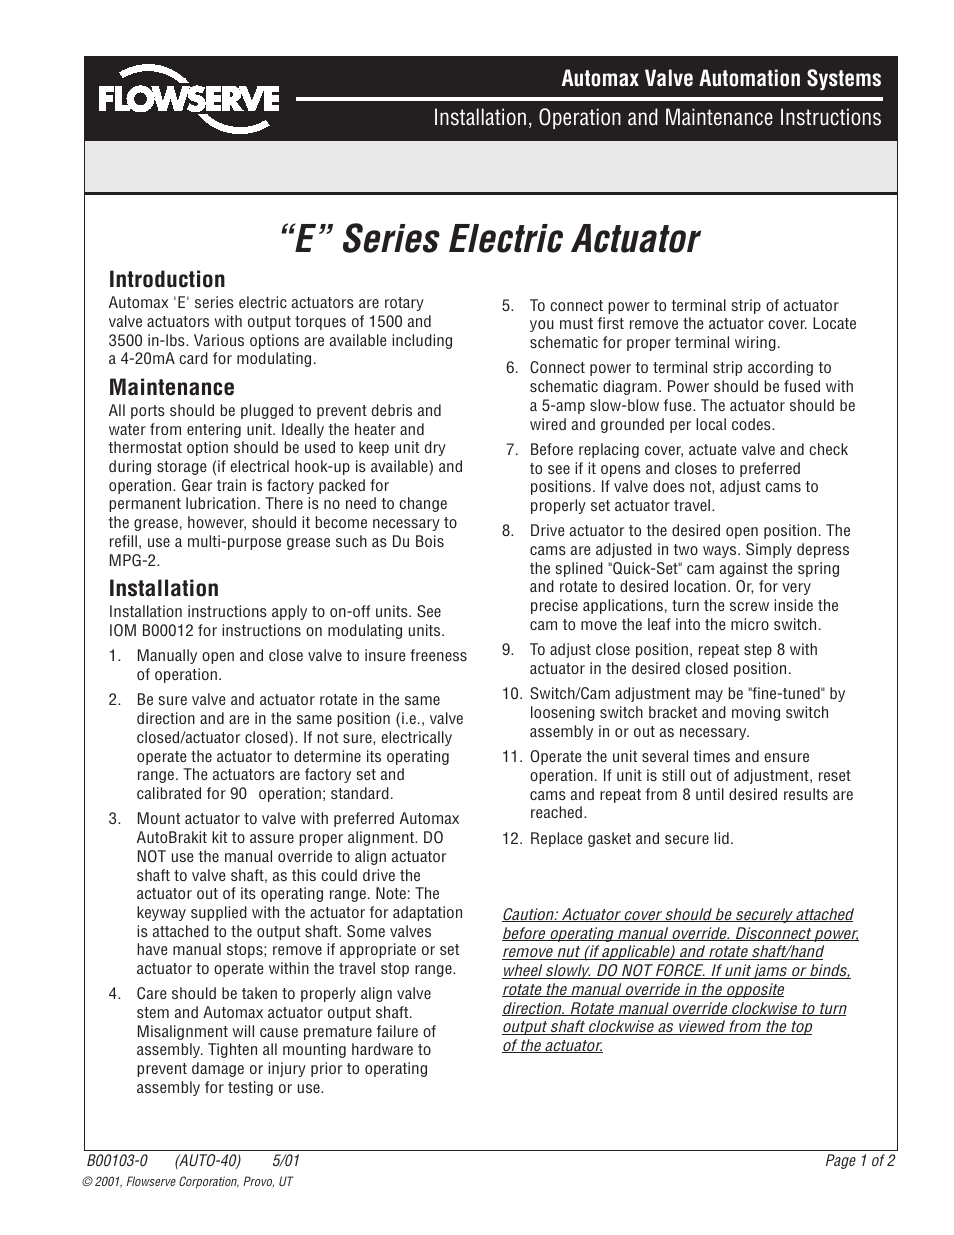 Flowserve E Series Electric Actuator User Manual 2 Pages Wiring Diagram